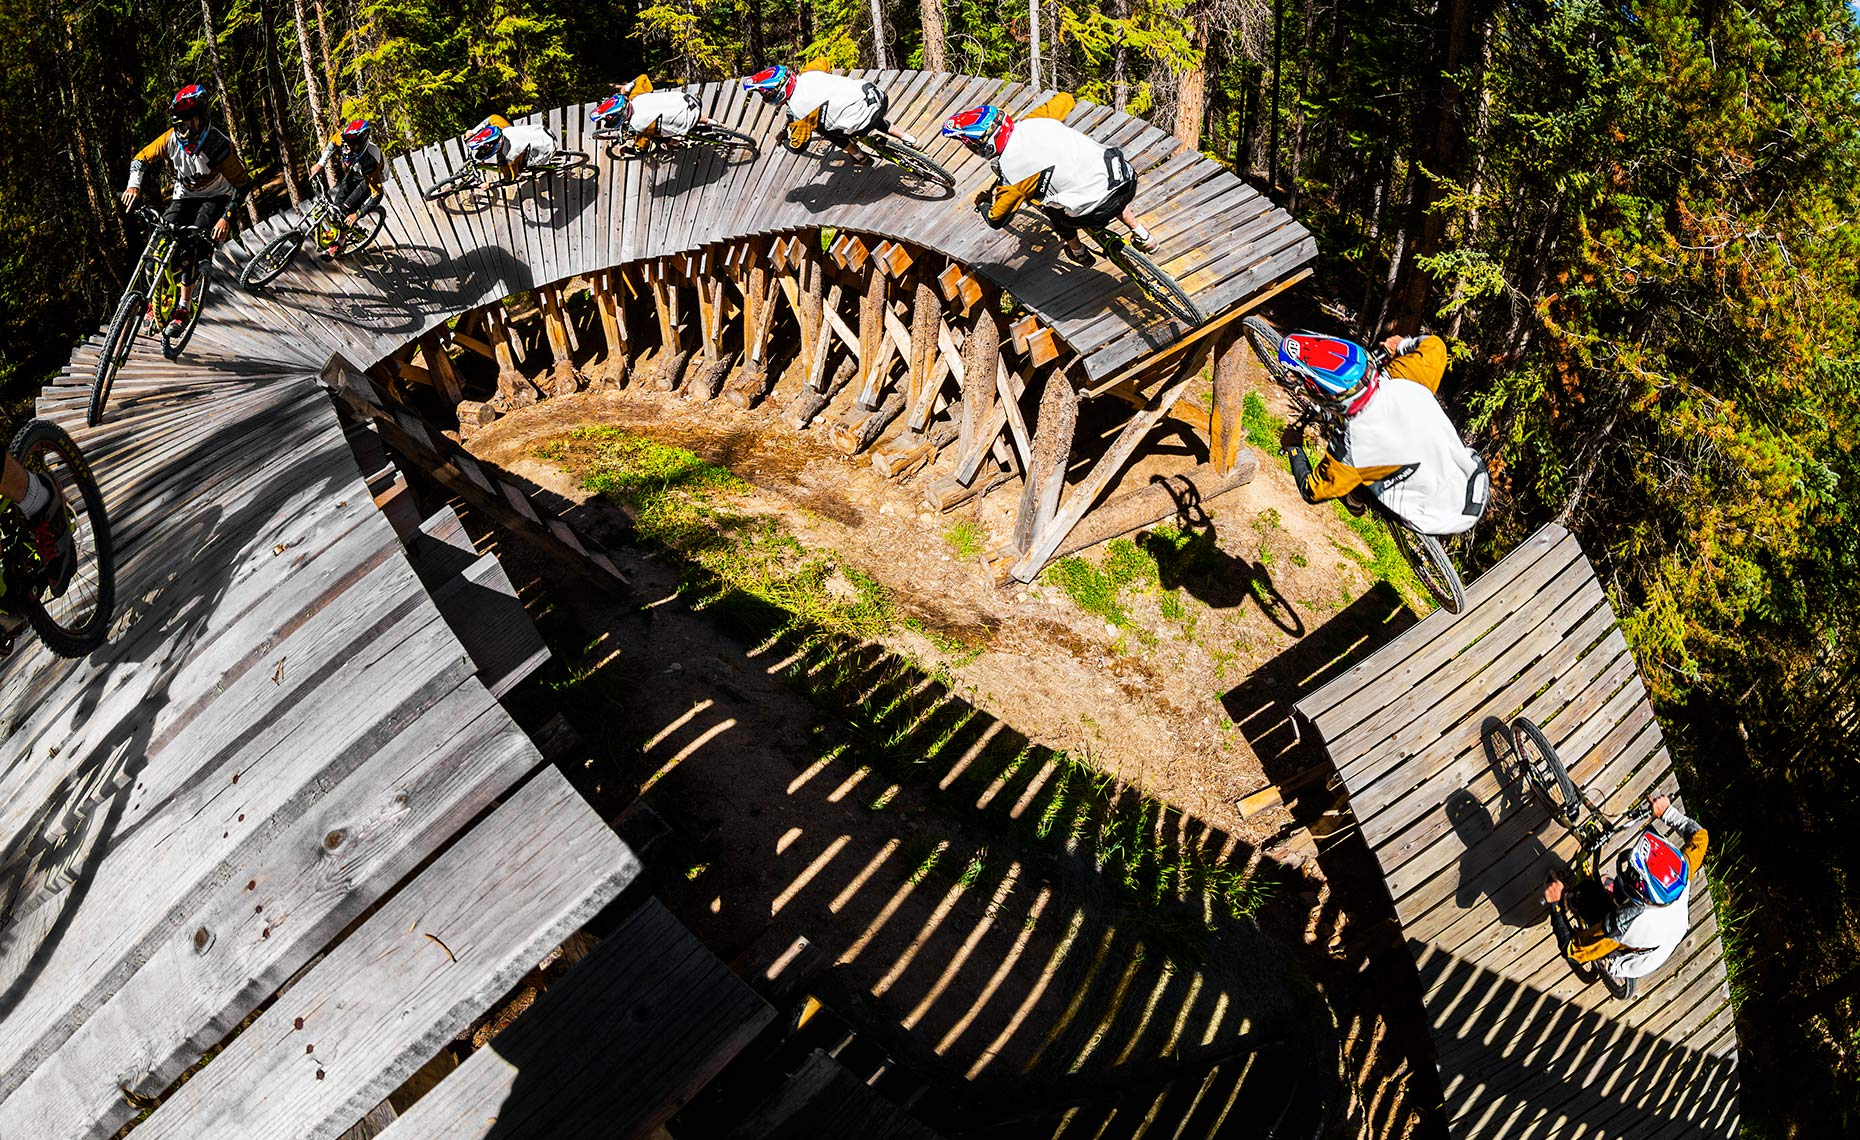 Paul_Weston_Trestle_Bike_Park_Colorado_Chris_Wellhausen_01